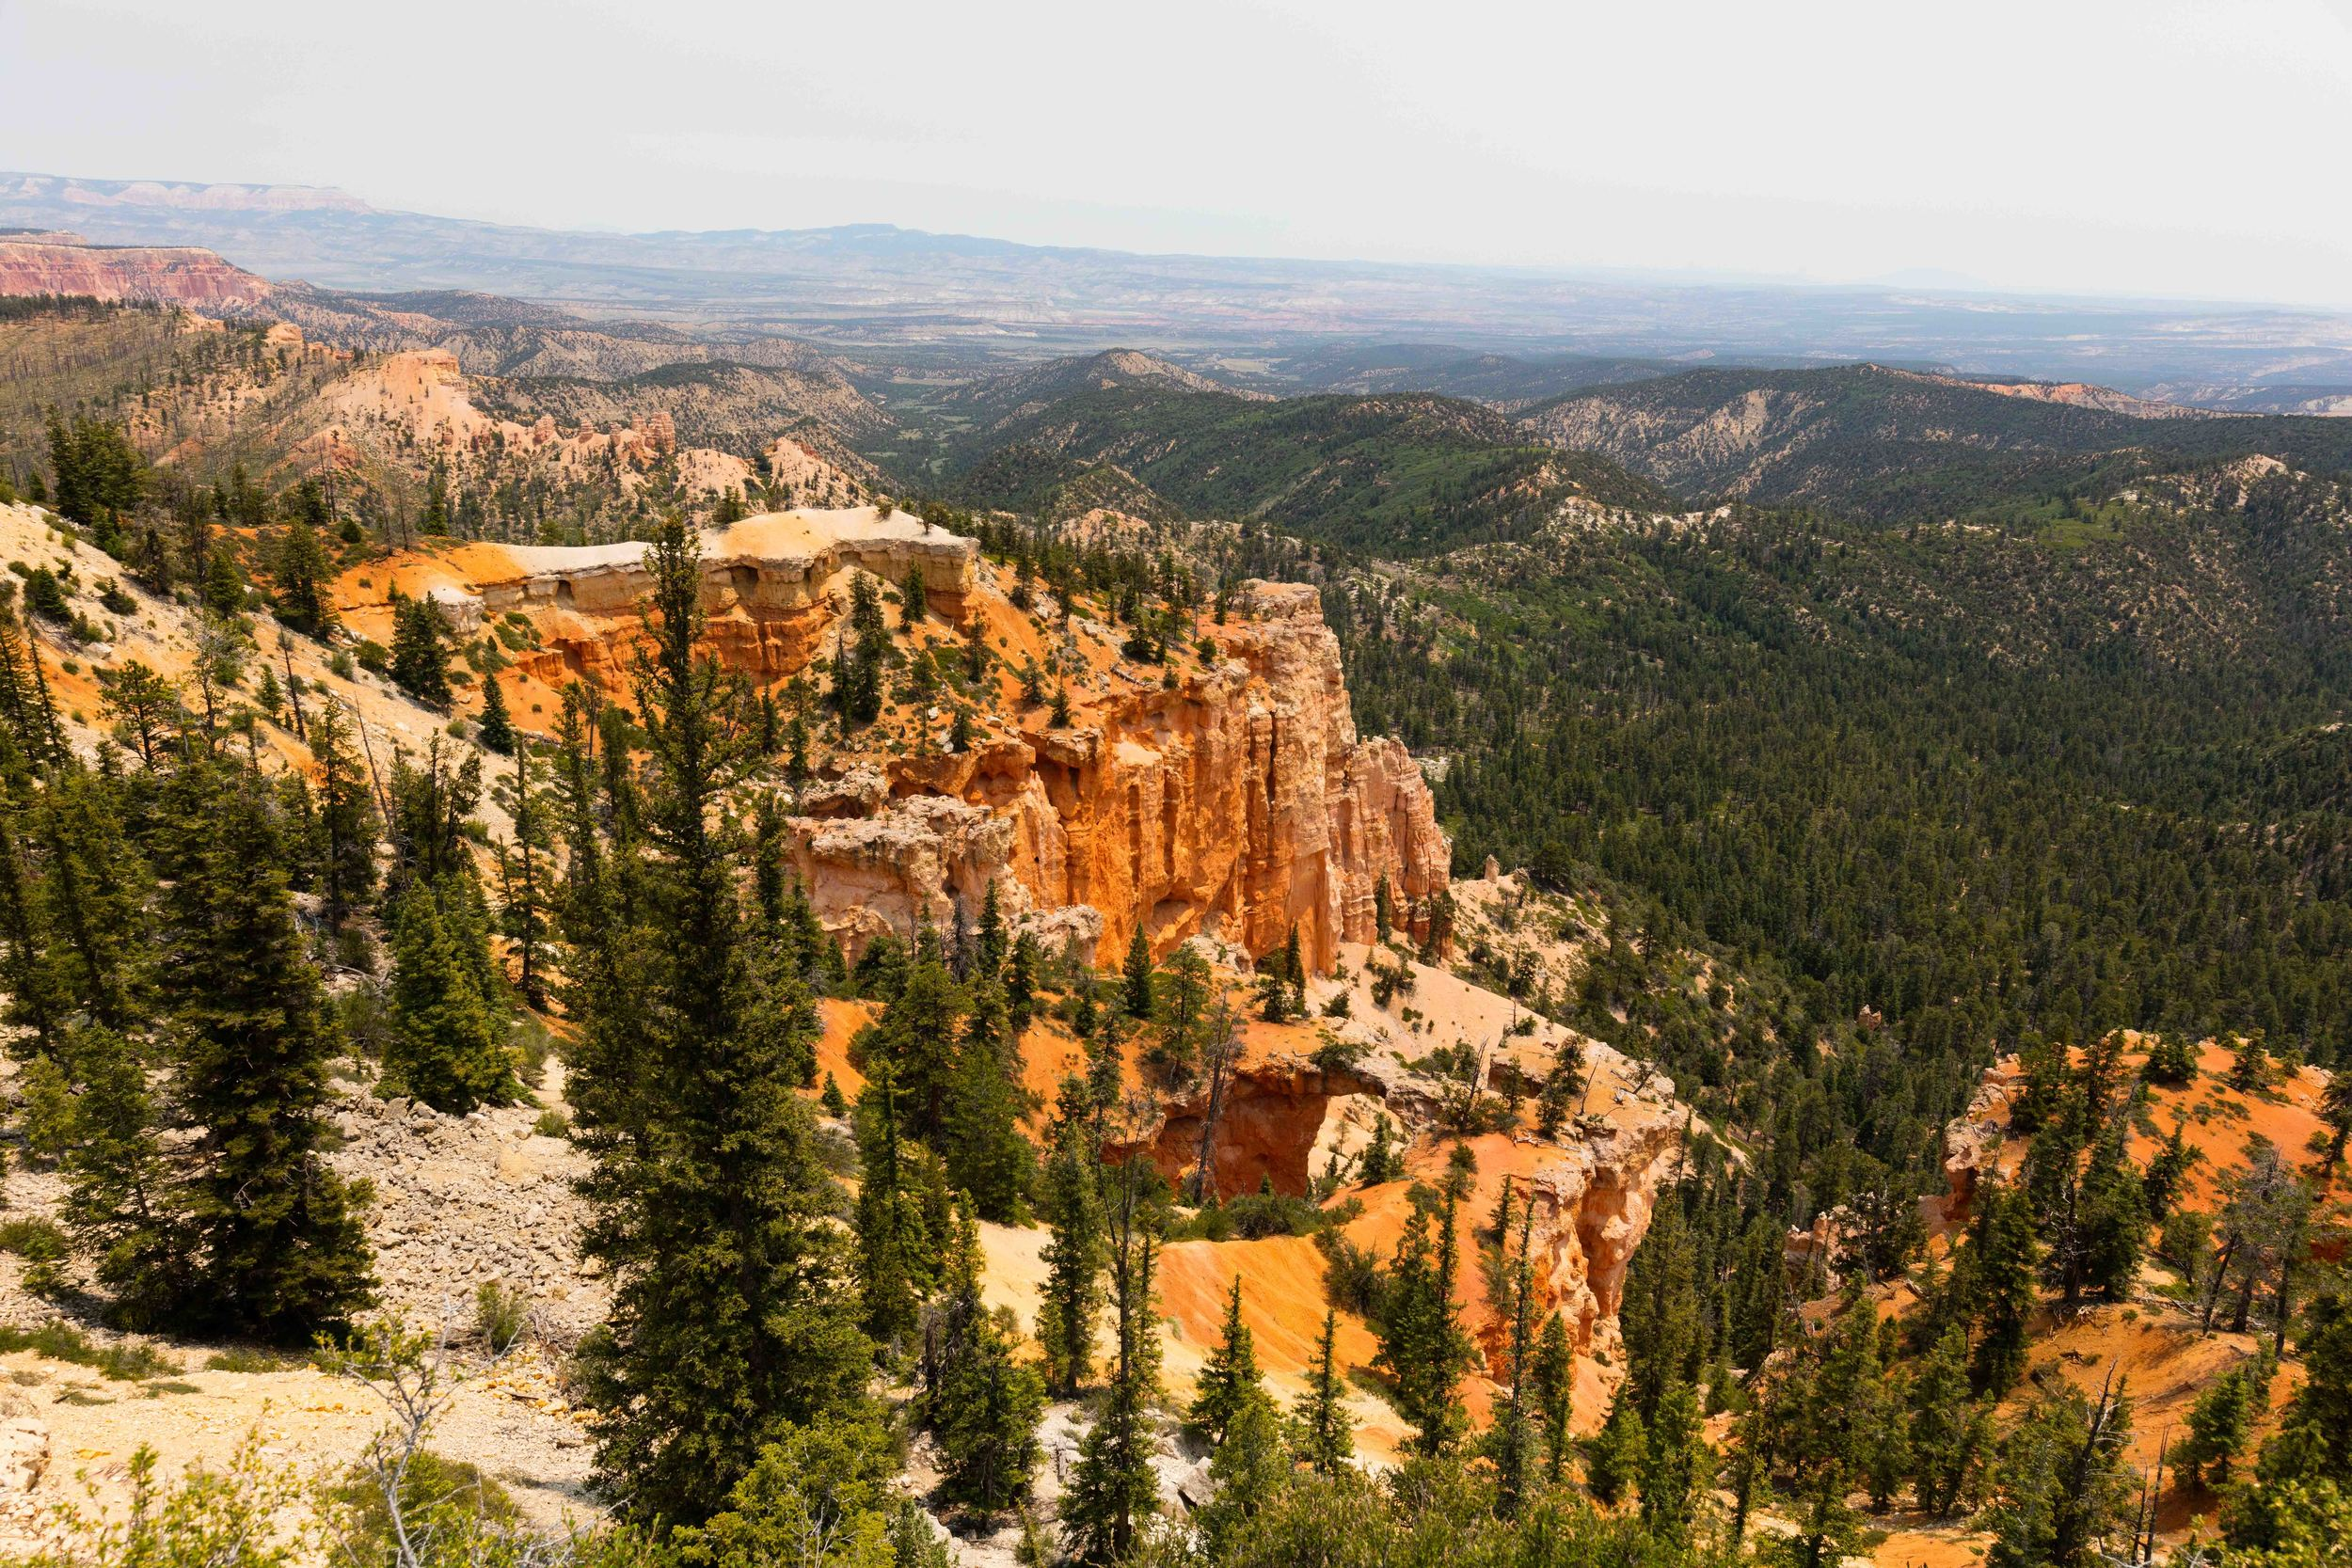 Farview & Piracy Point, Bryce Canyon